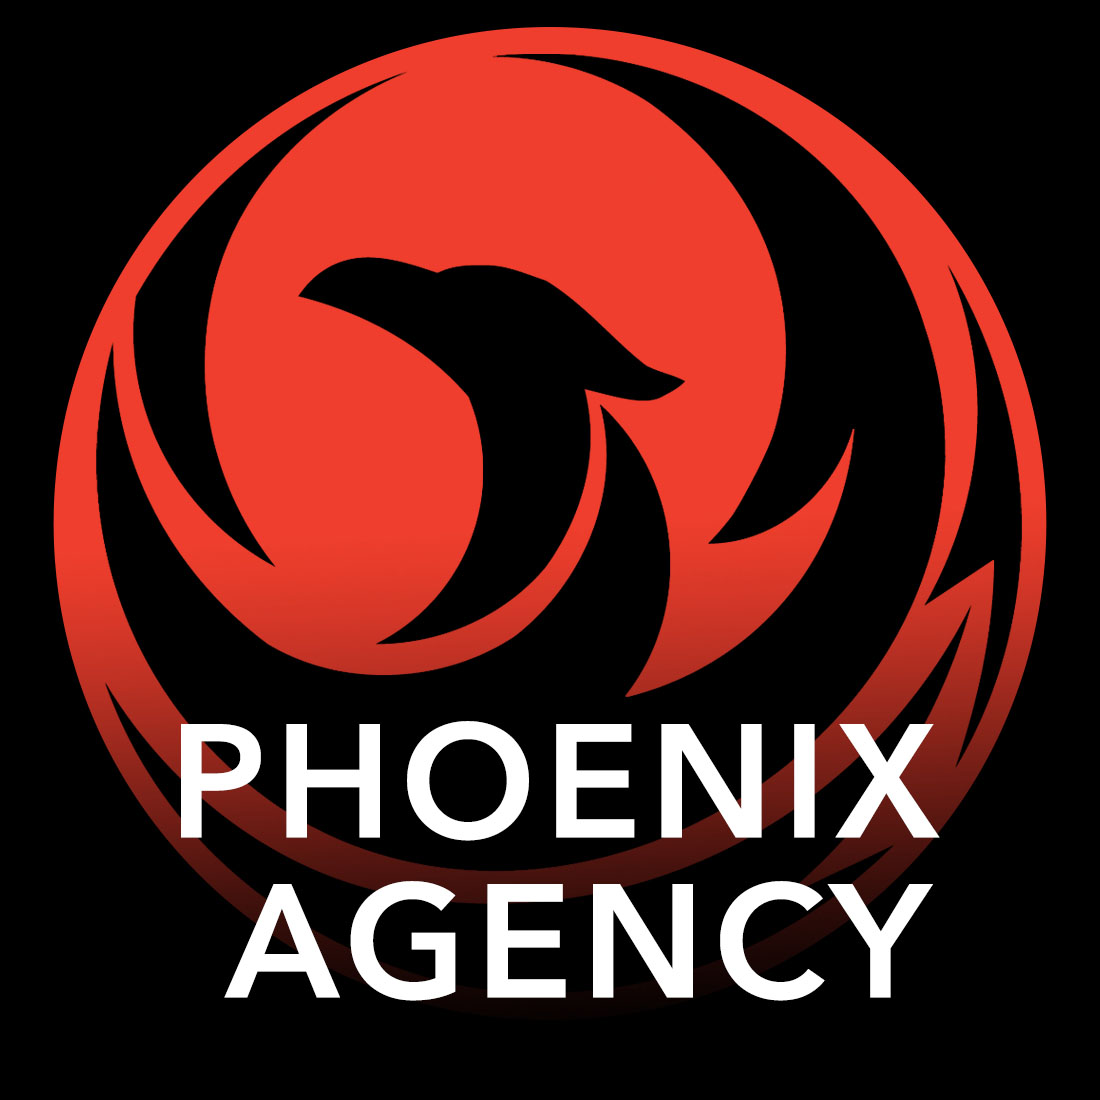 It's Phoenix Agency Day! At last!